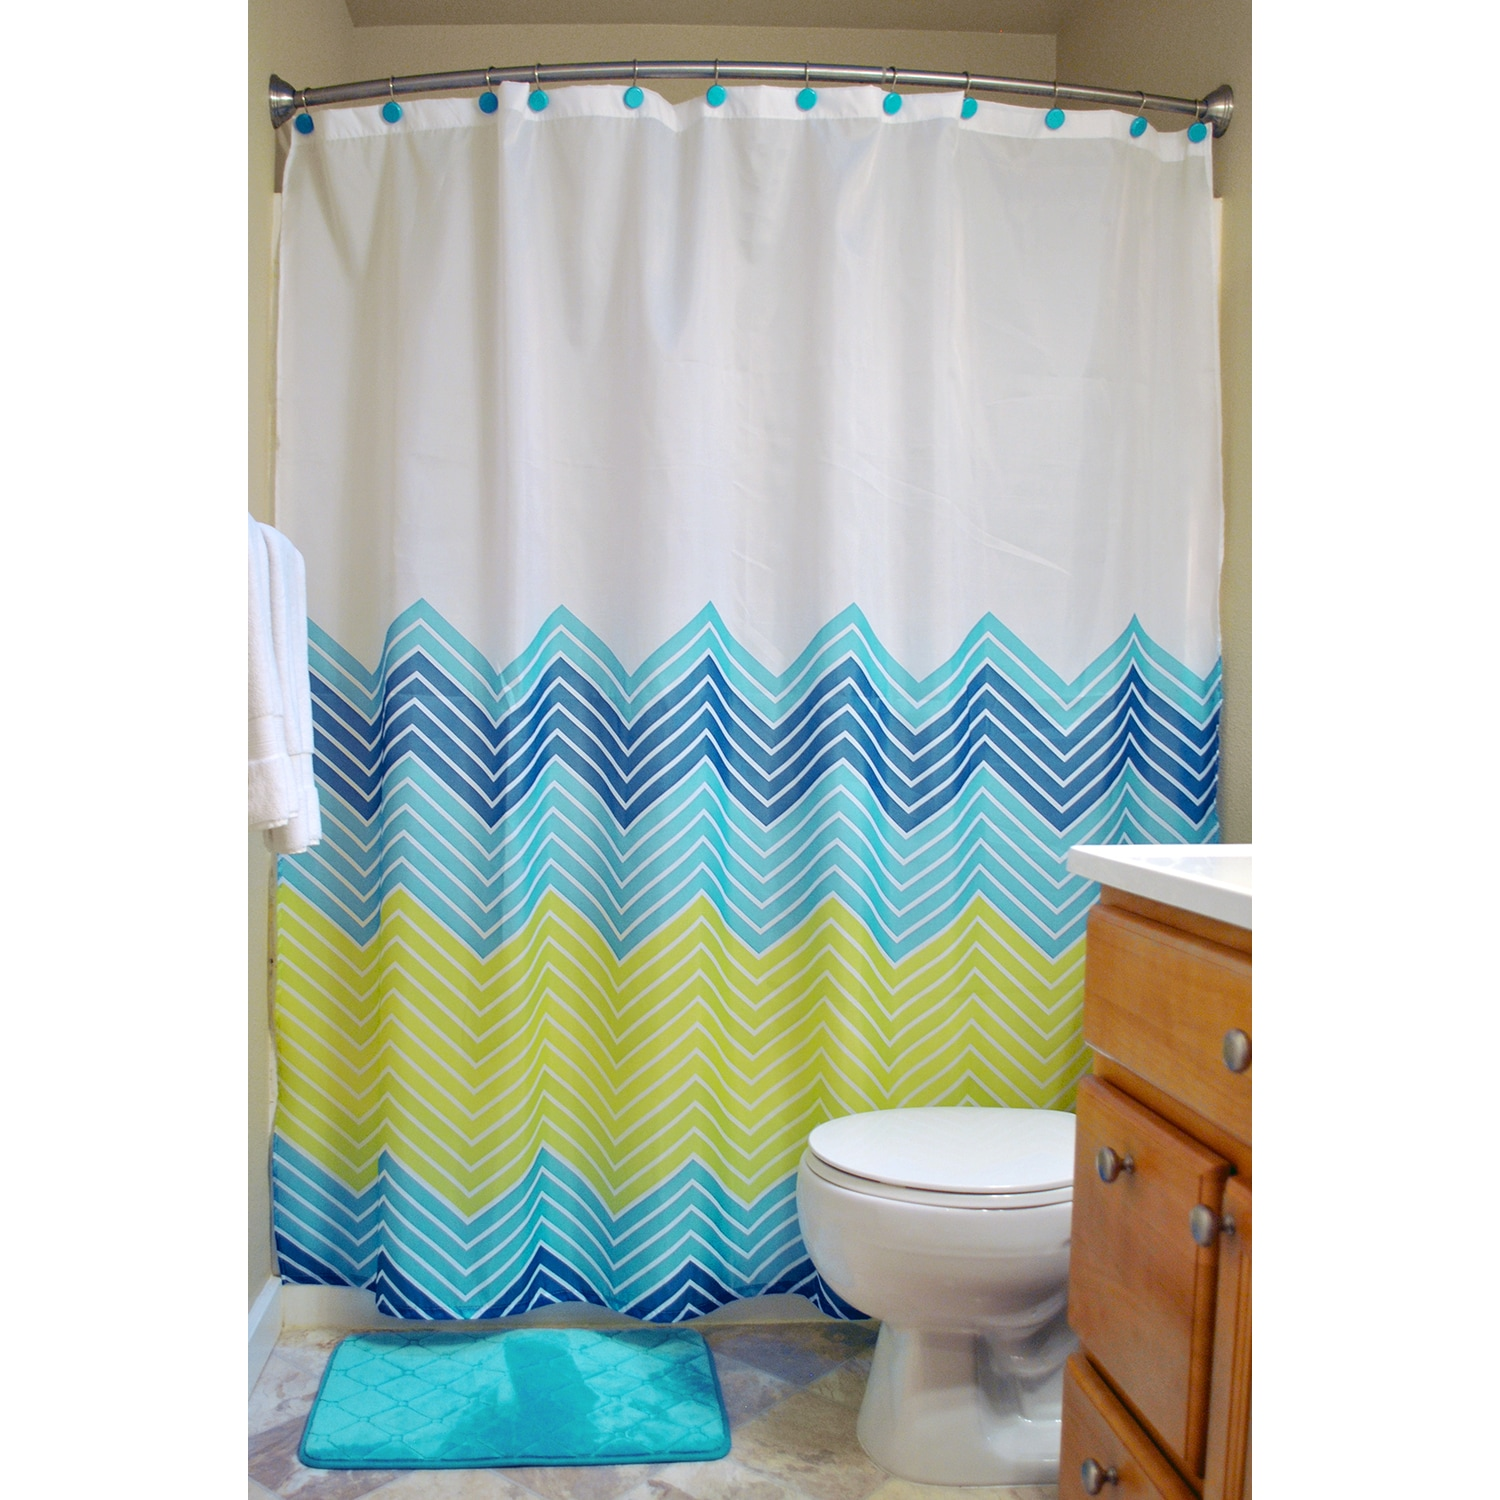 Shop 14 Piece Shower Curtain And Rug Set Free Shipping On Orders